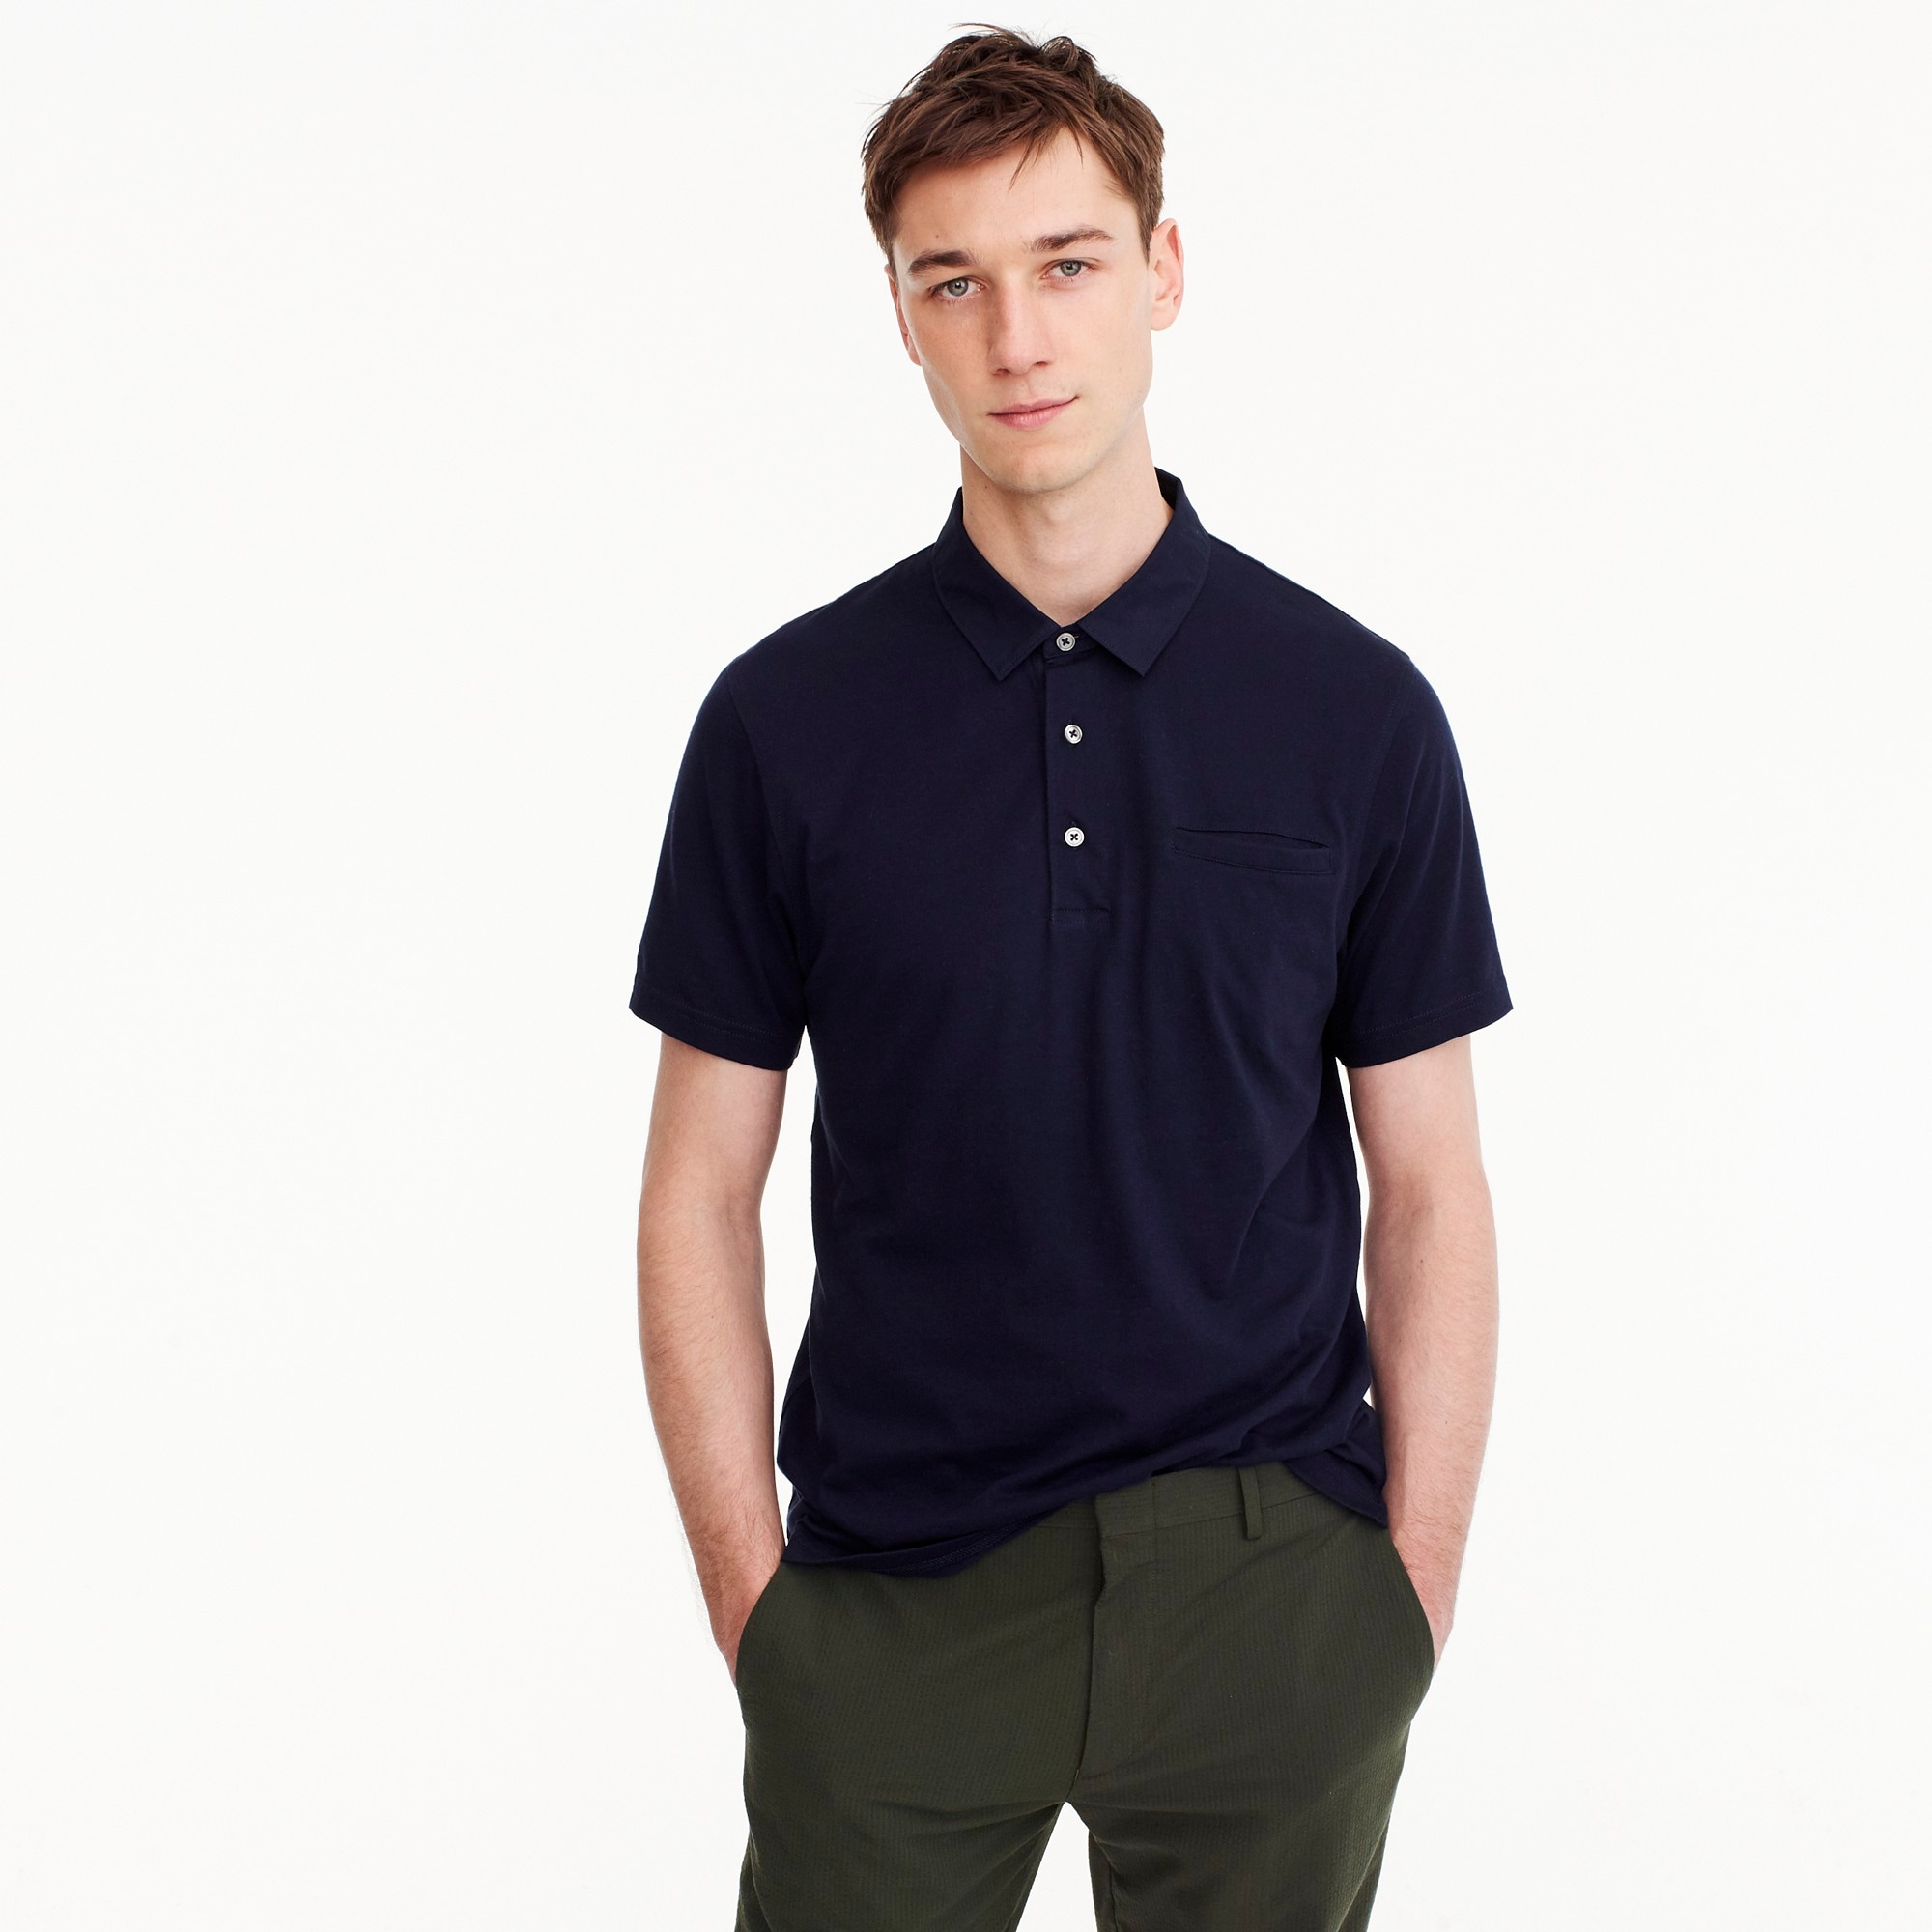 Image 2 for Tall woven-collar polo in Pima cotton